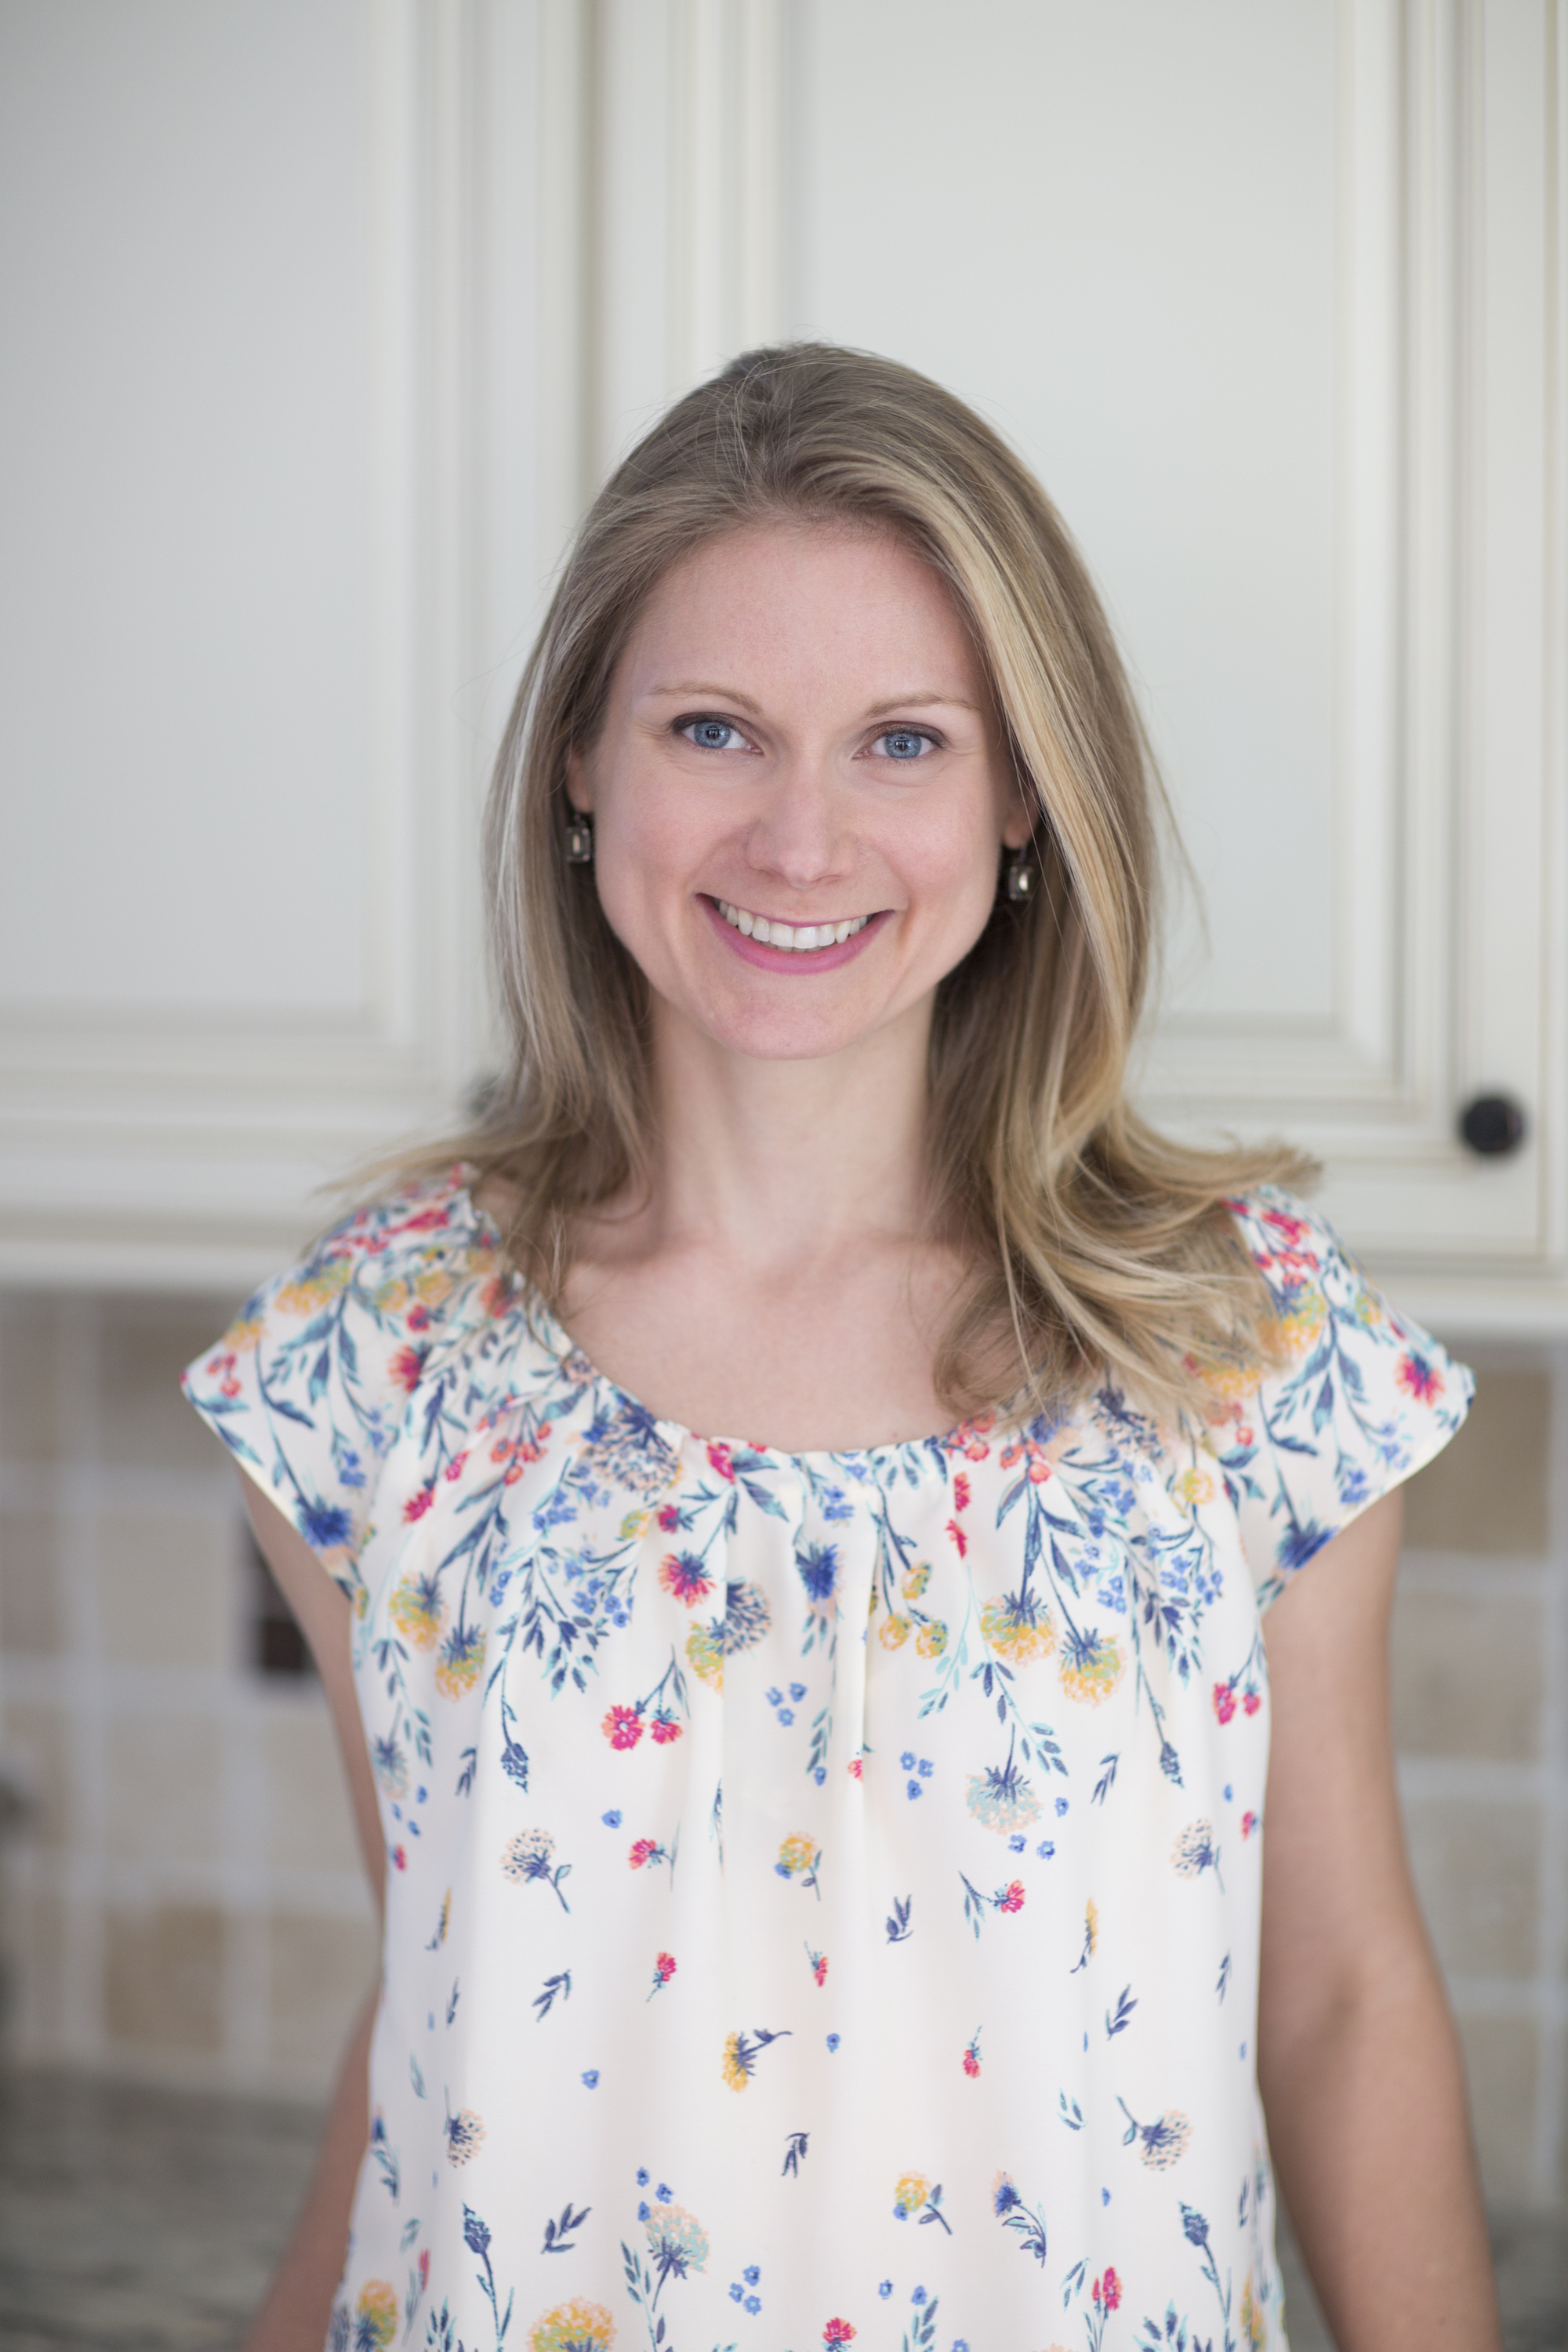 What's In Her Fridge? Author Jolene Hart Shares Her Secrets For Eating Healthy